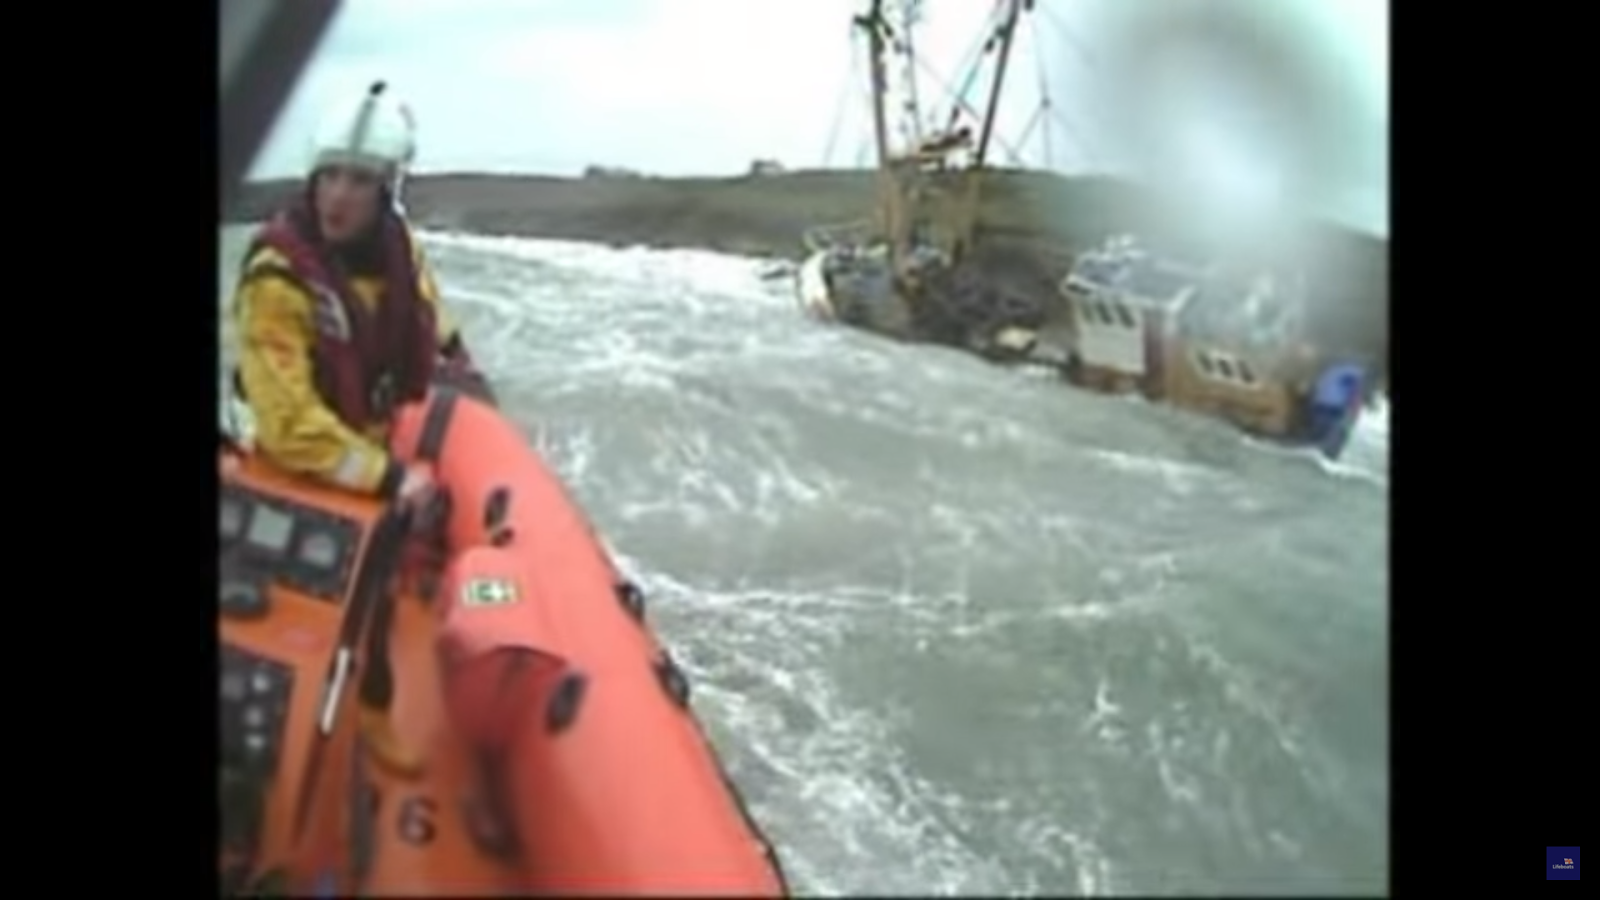 VIDEO: Kinsale RNLI rescue three fishermen from sinking trawler in storm conditions